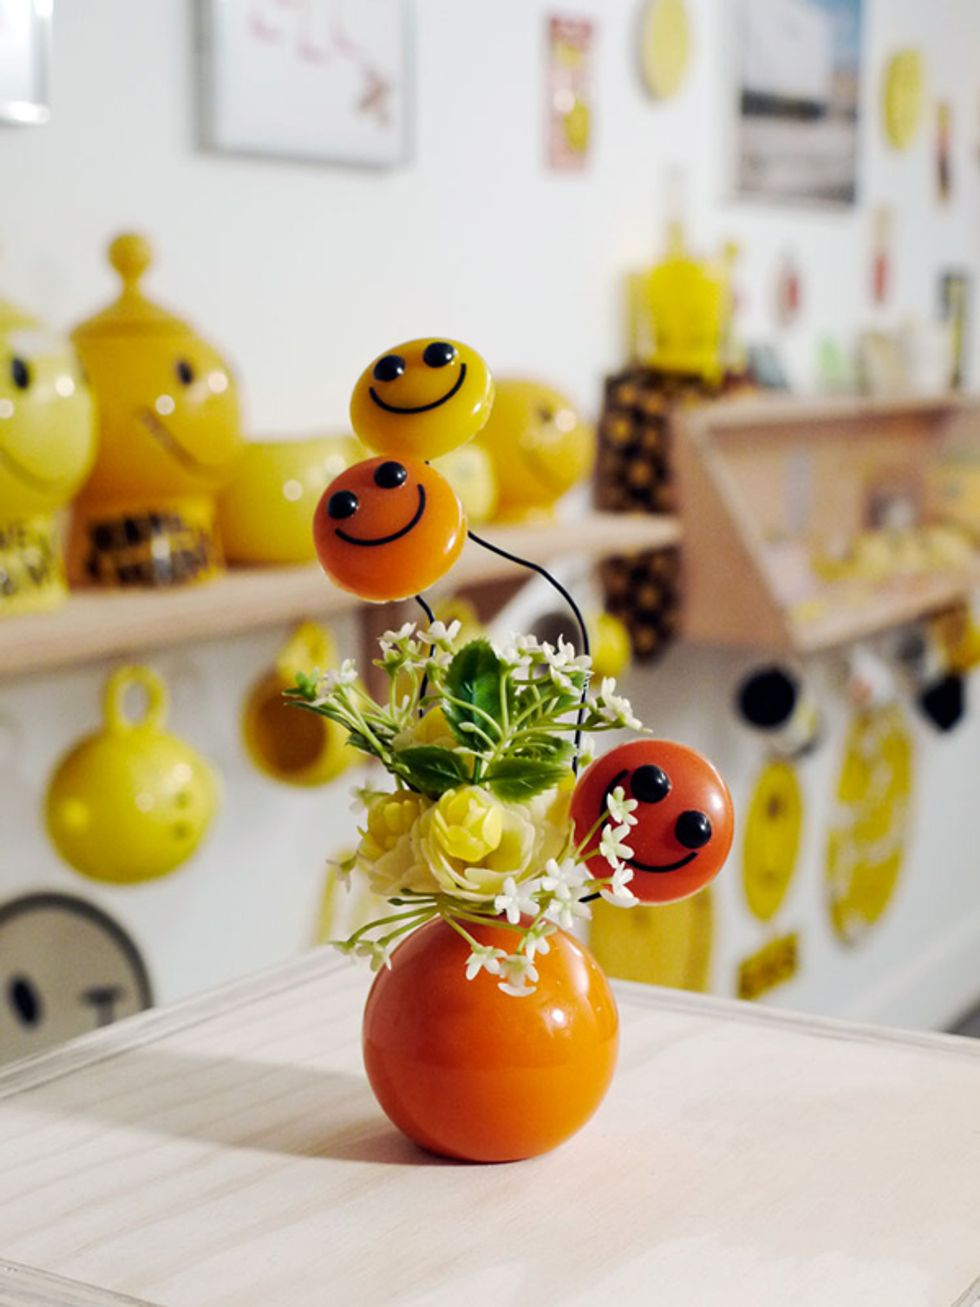 Have A Nice Day At Bushwick's Smile Face Museum